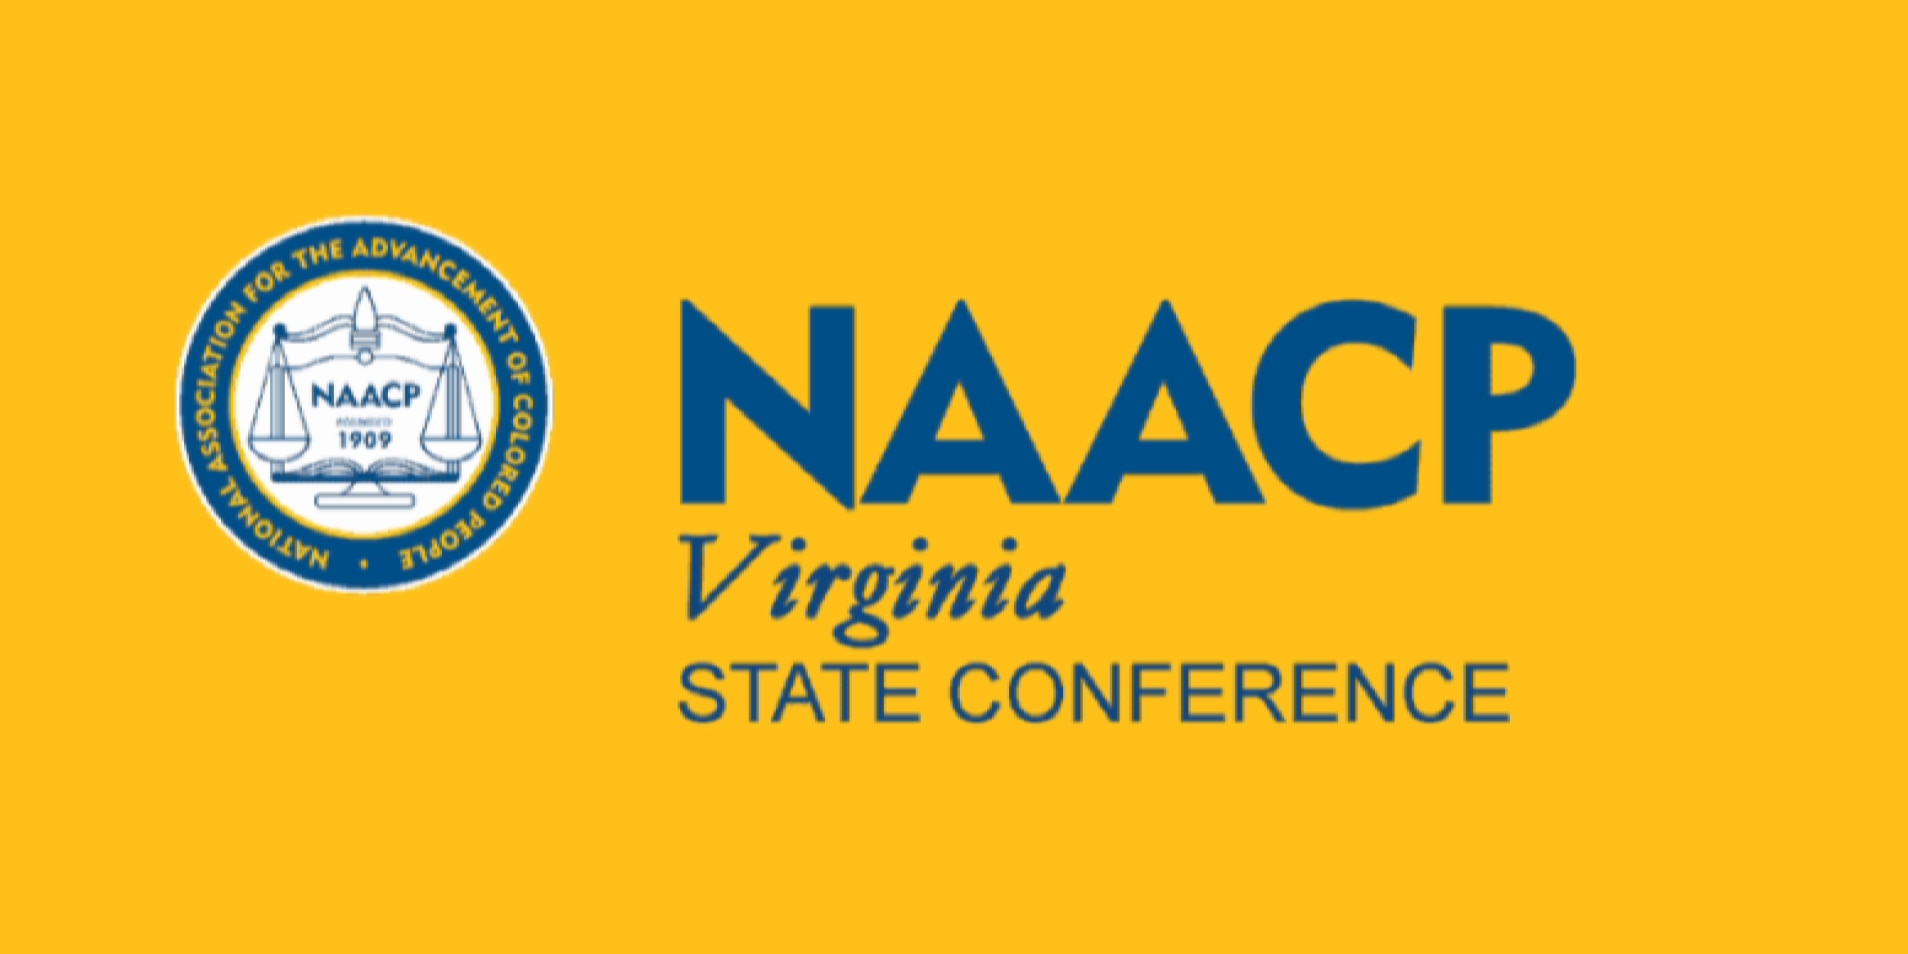 'It was productive': Virginia NAACP discusses public safety concerns with Gov. Northam and other state leaders